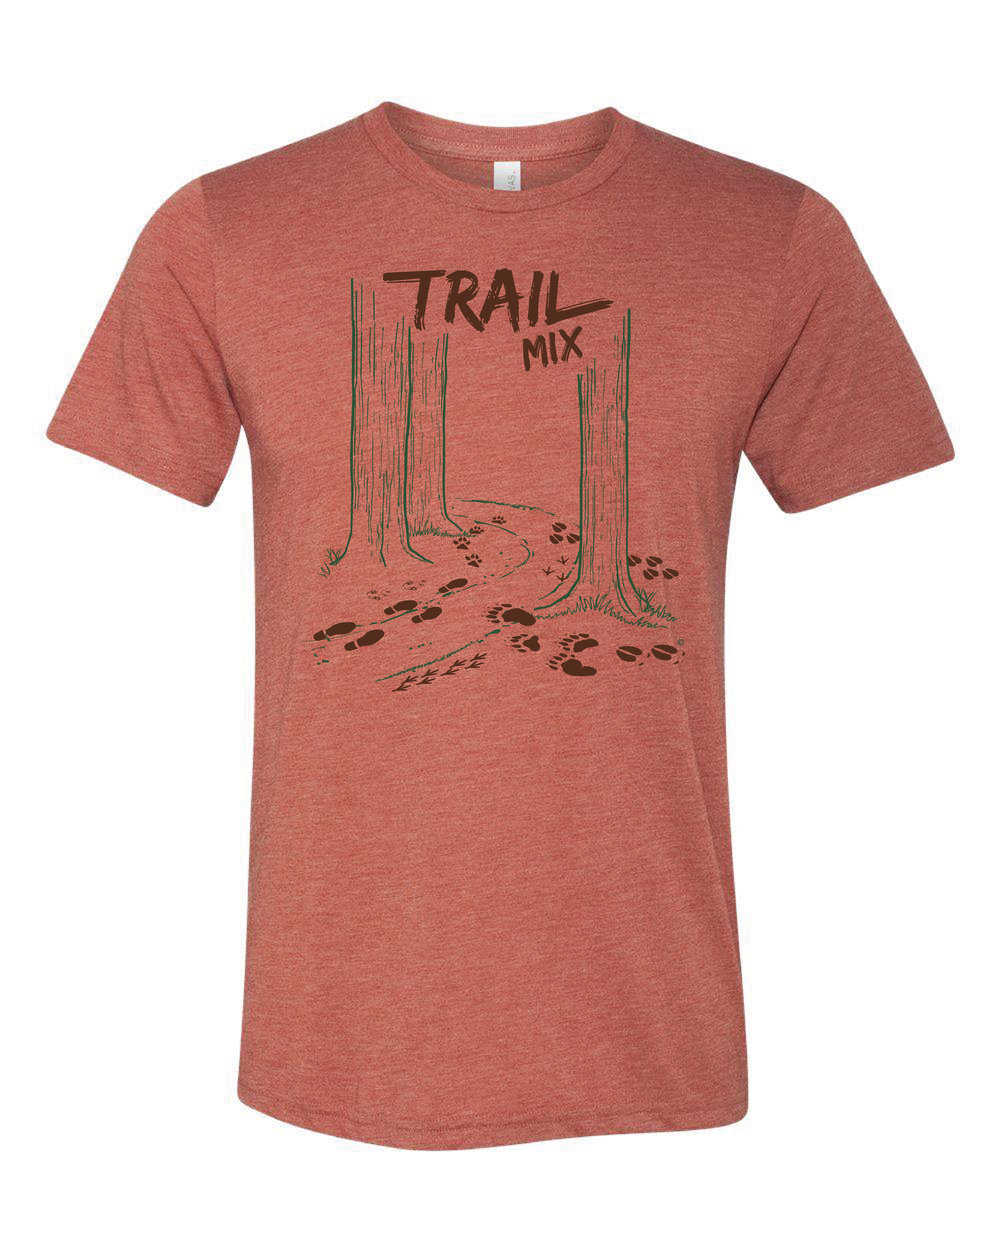 Trail Mix  $25